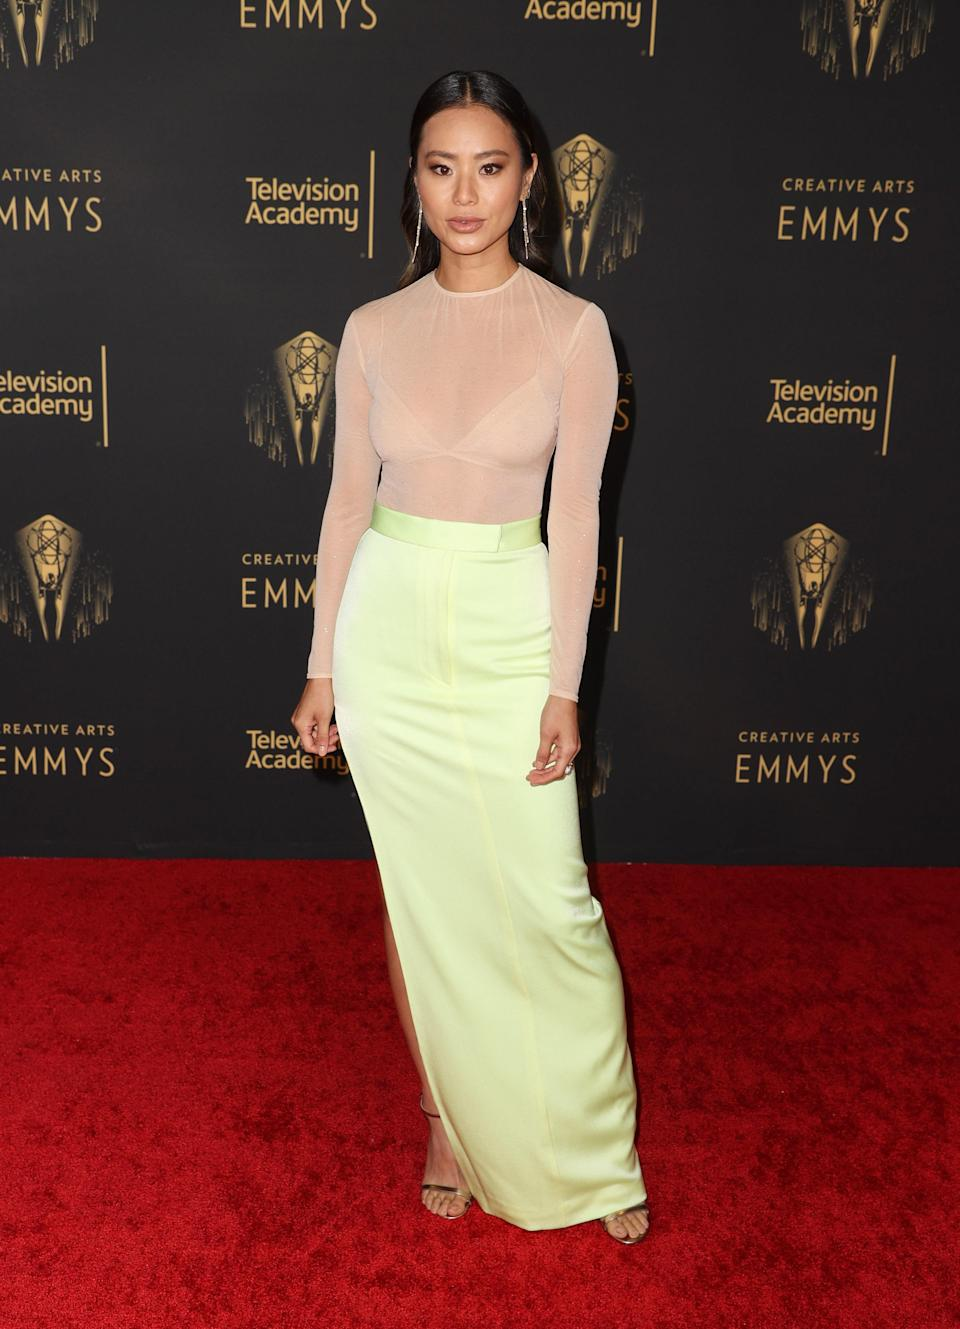 Jamie looked elegant in a sheer nude top, celery green skirt, and super shiny, middle-parted hair.